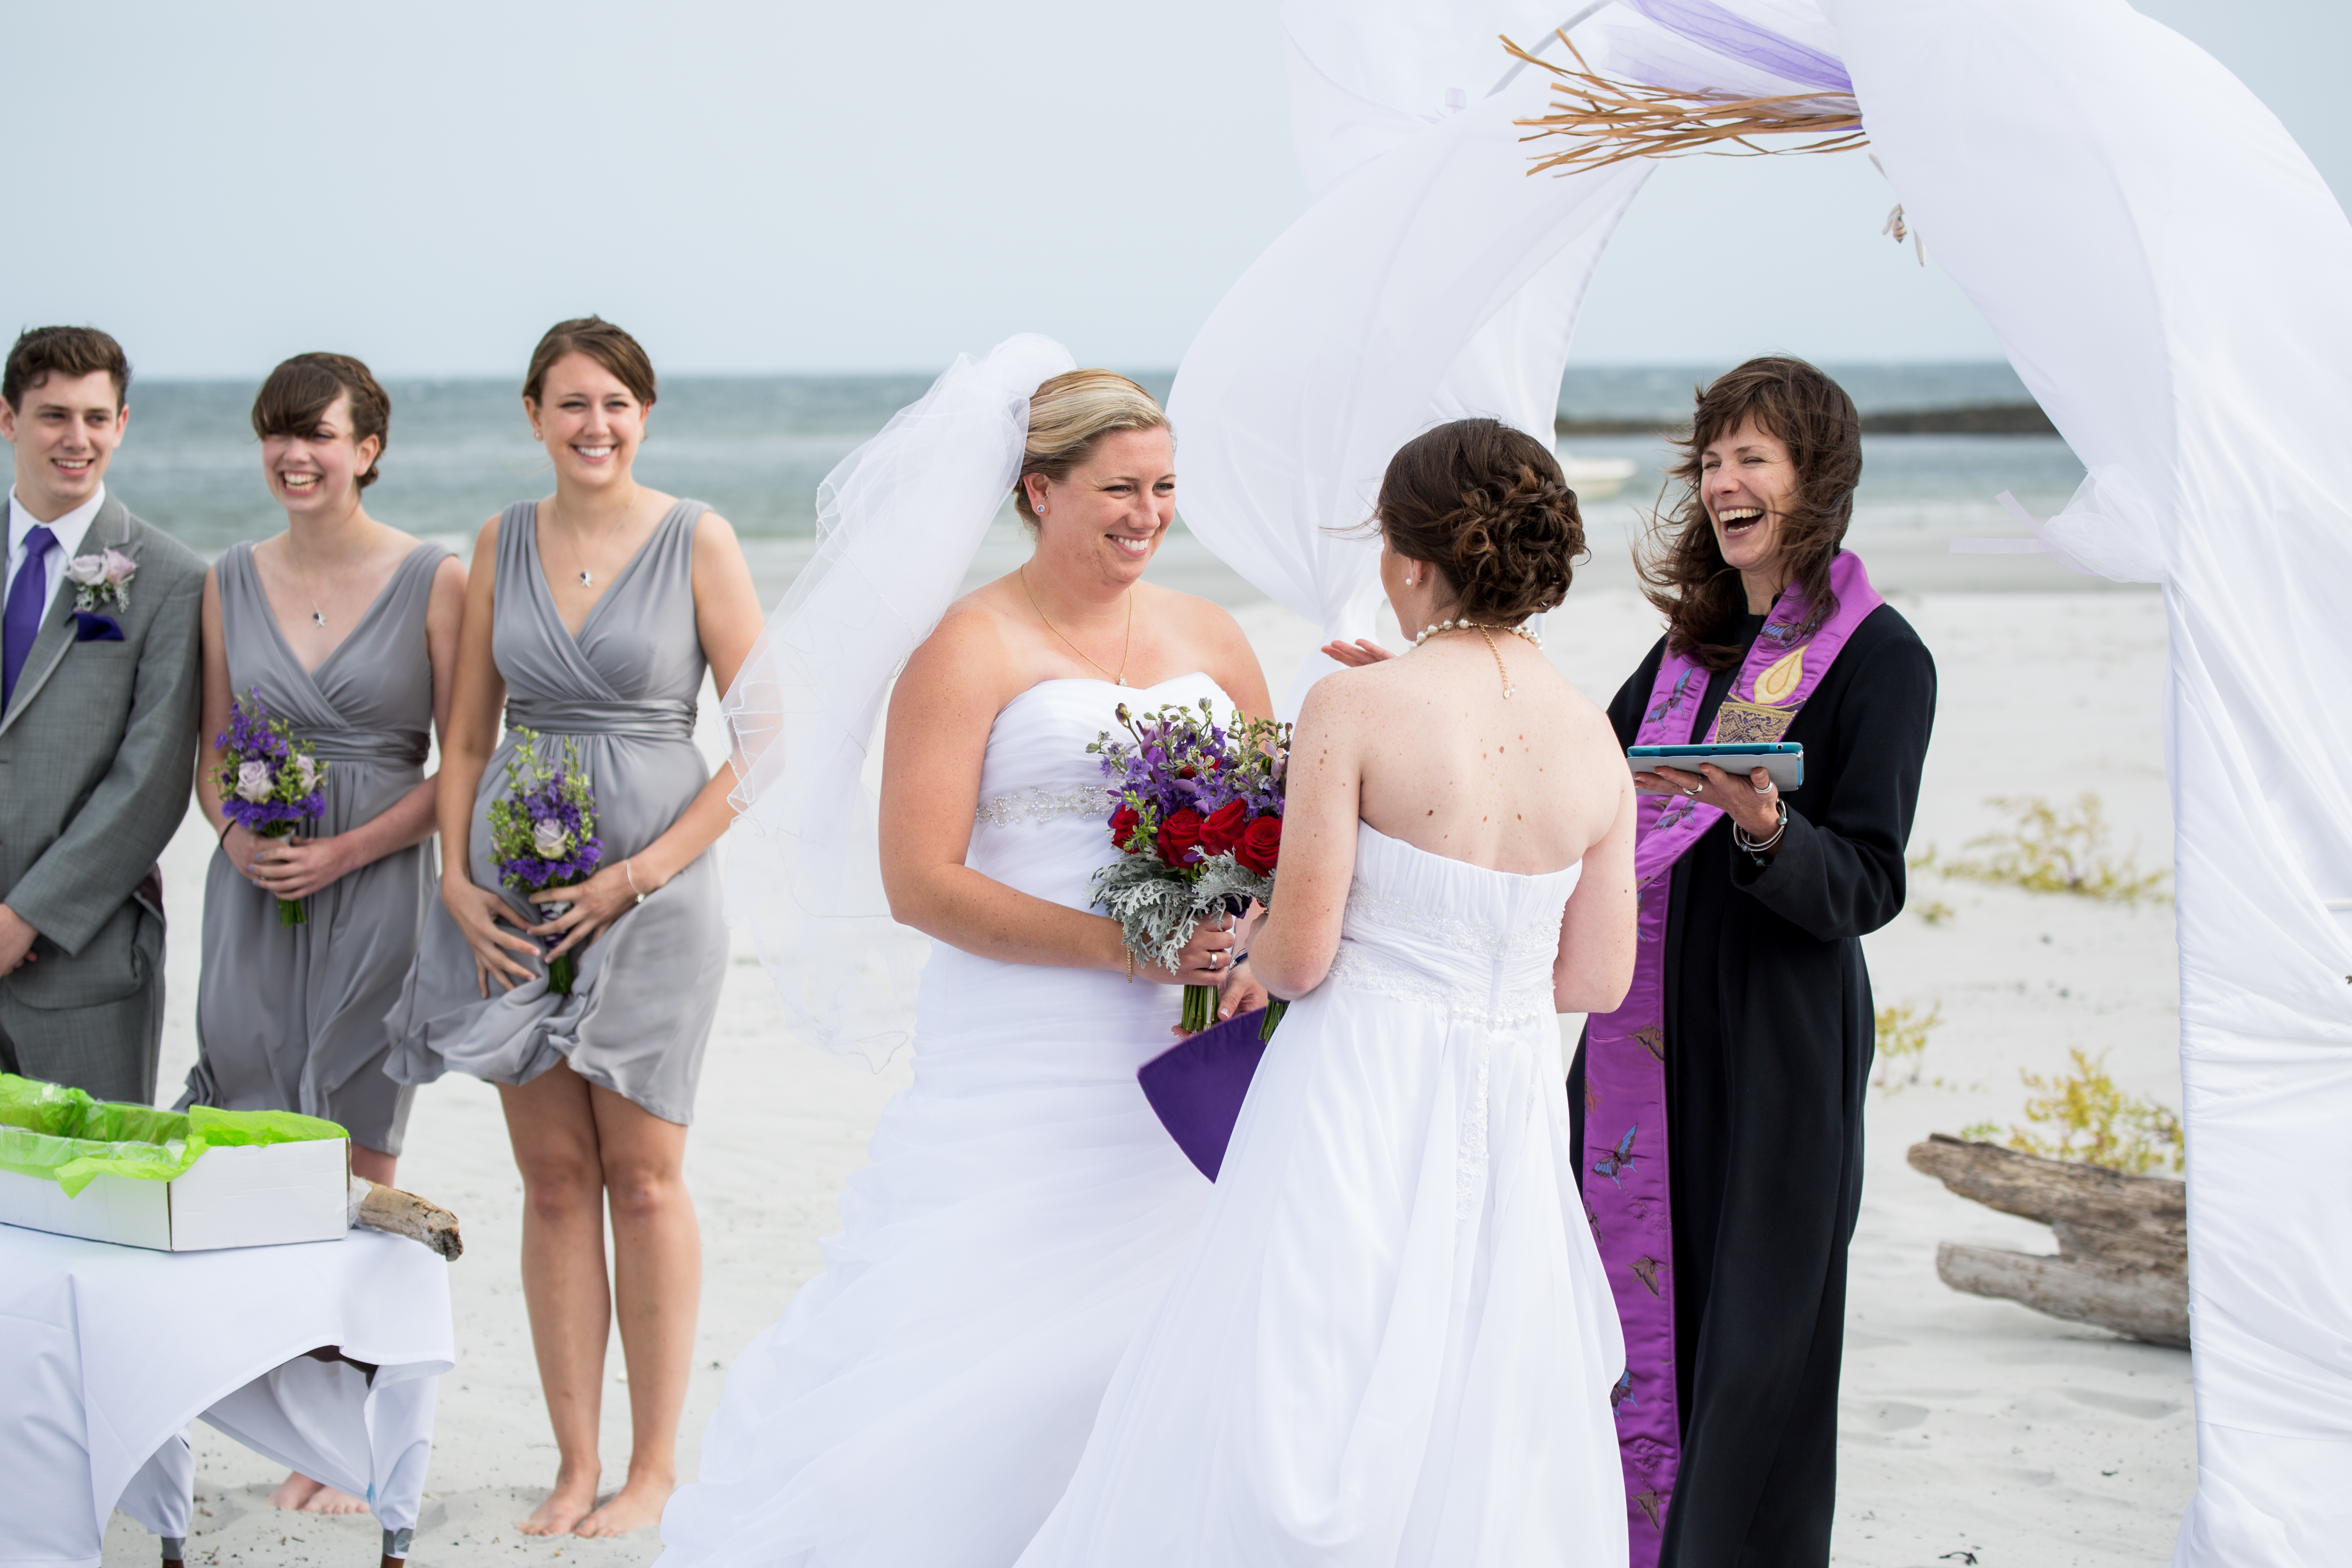 Two women getting married at the beach